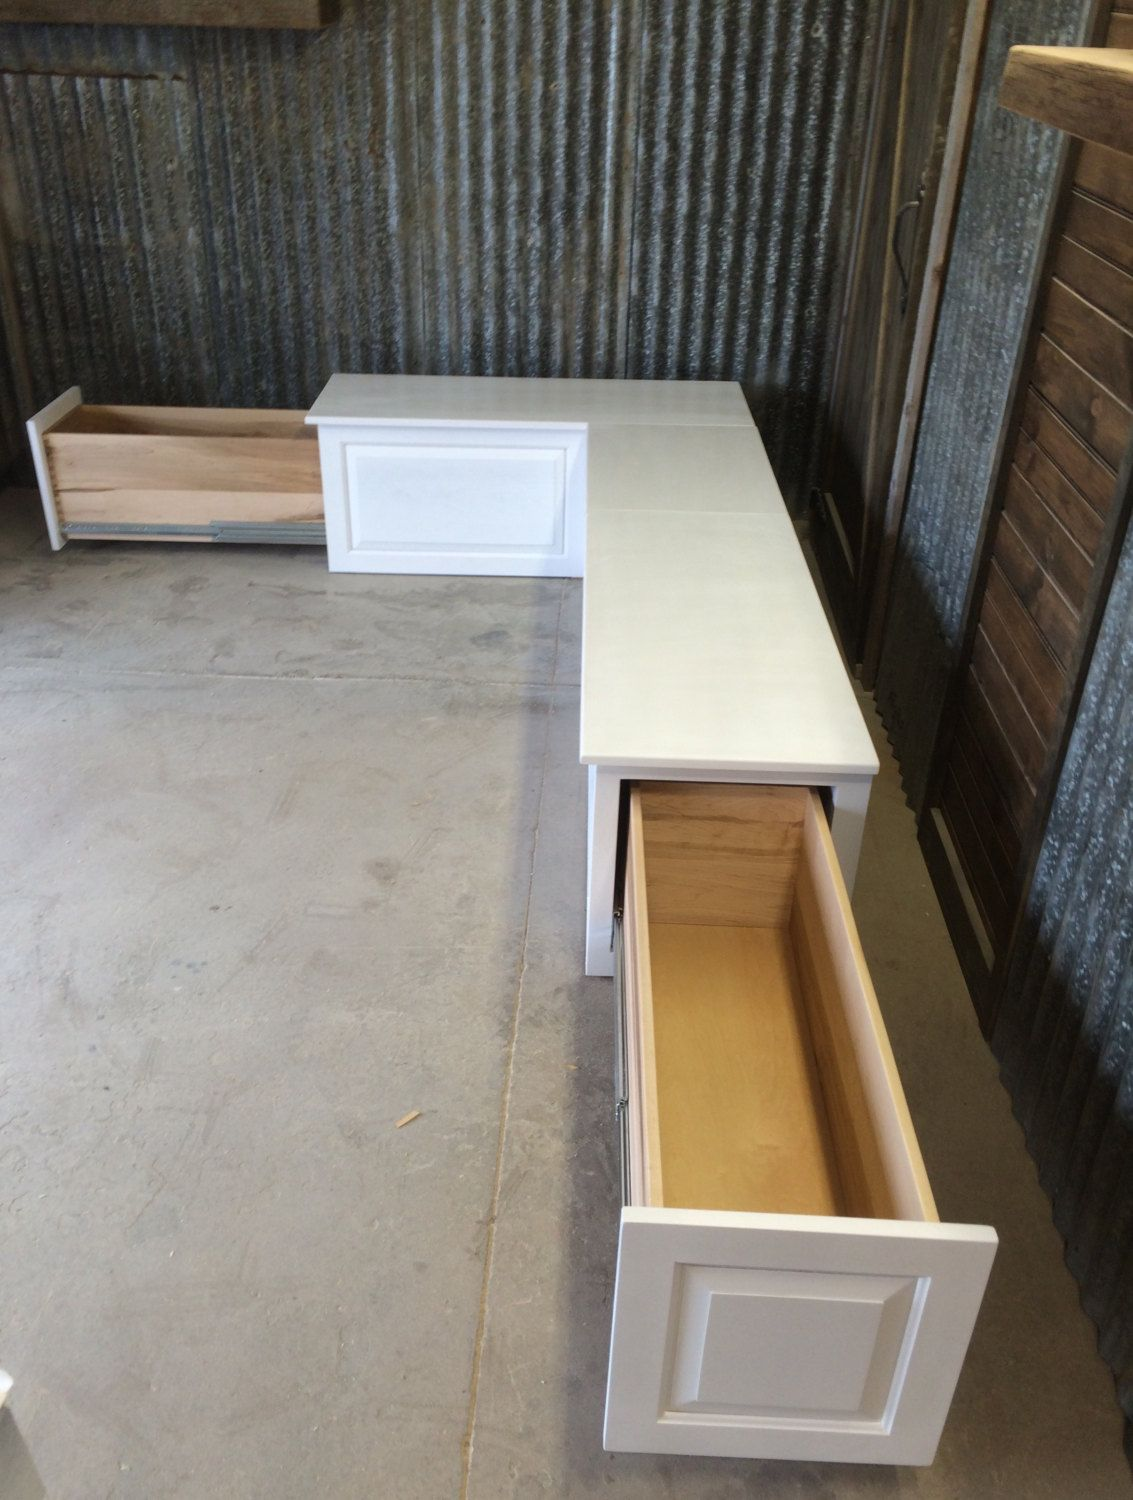 corner kitchen bench white sink with drainboard banquette seat storage drawers